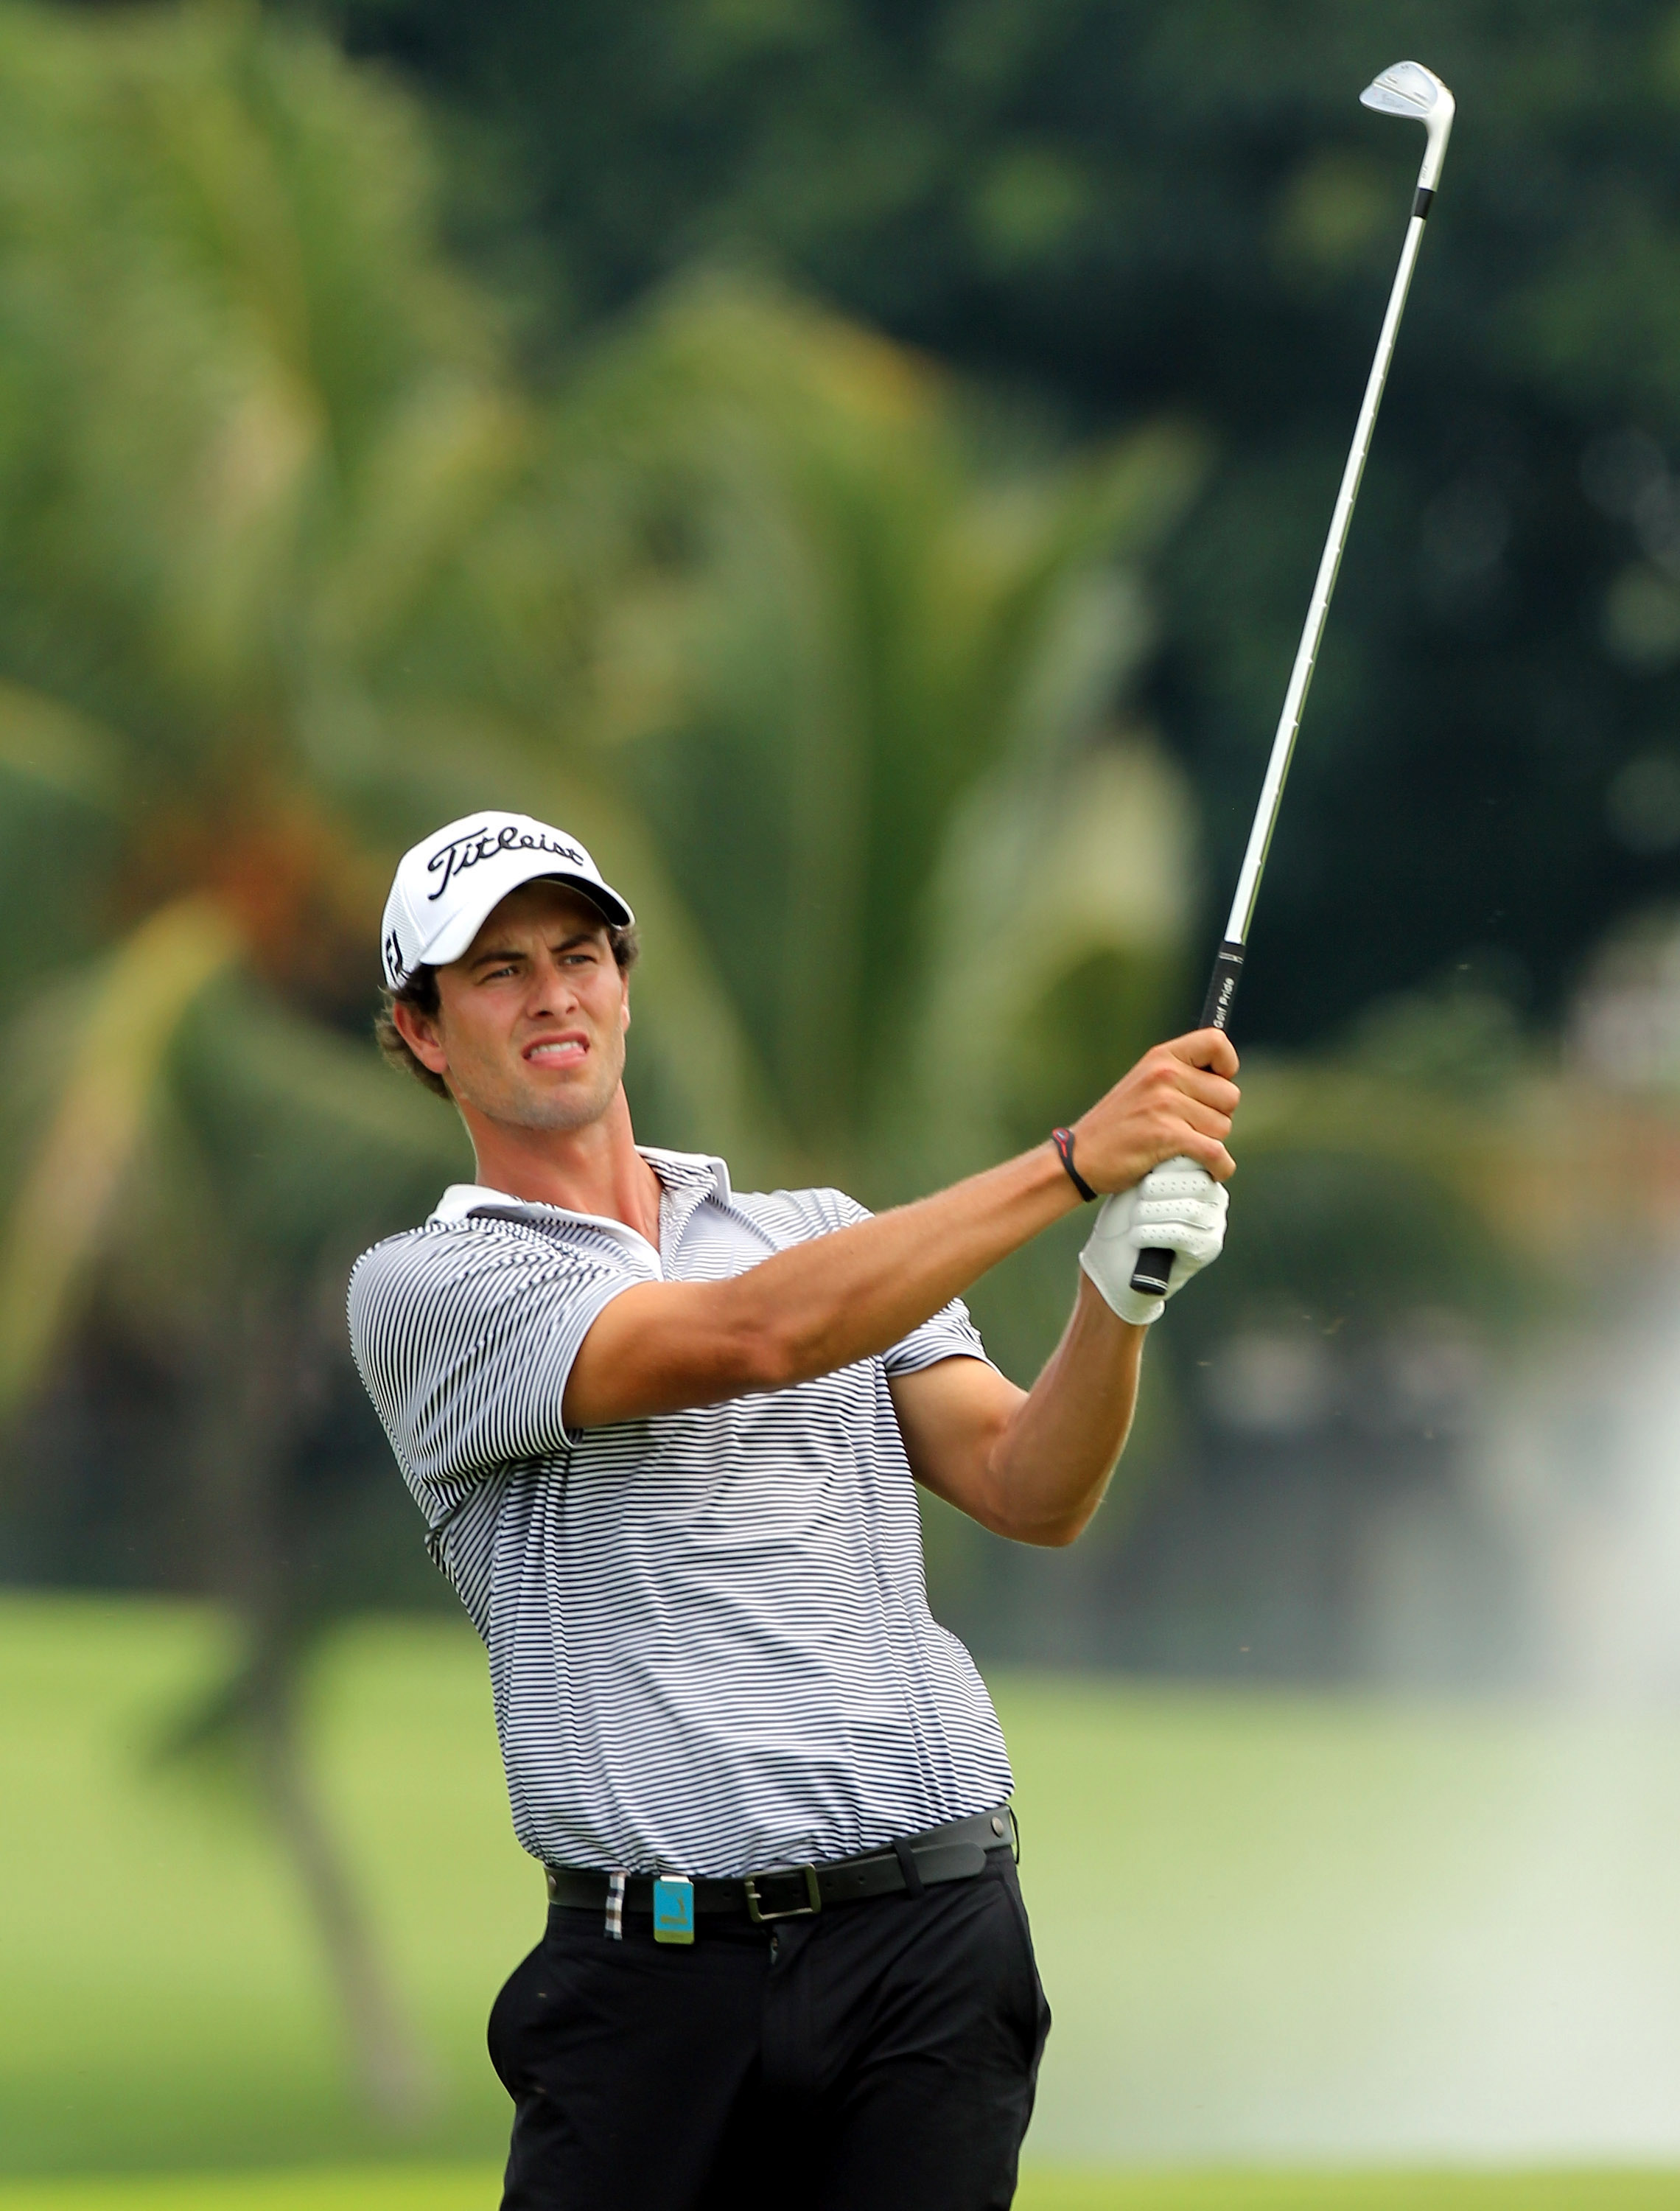 SINGAPORE - NOVEMBER 12:  Adam Scott of Australia plays his 2nd shot on the 5th hole during the second round of the Barclays Singapore Open held at the Sentosa Golf Club on November 12, 2010 in Singapore, Singapore.  (Photo by Stanley Chou/Getty Images)